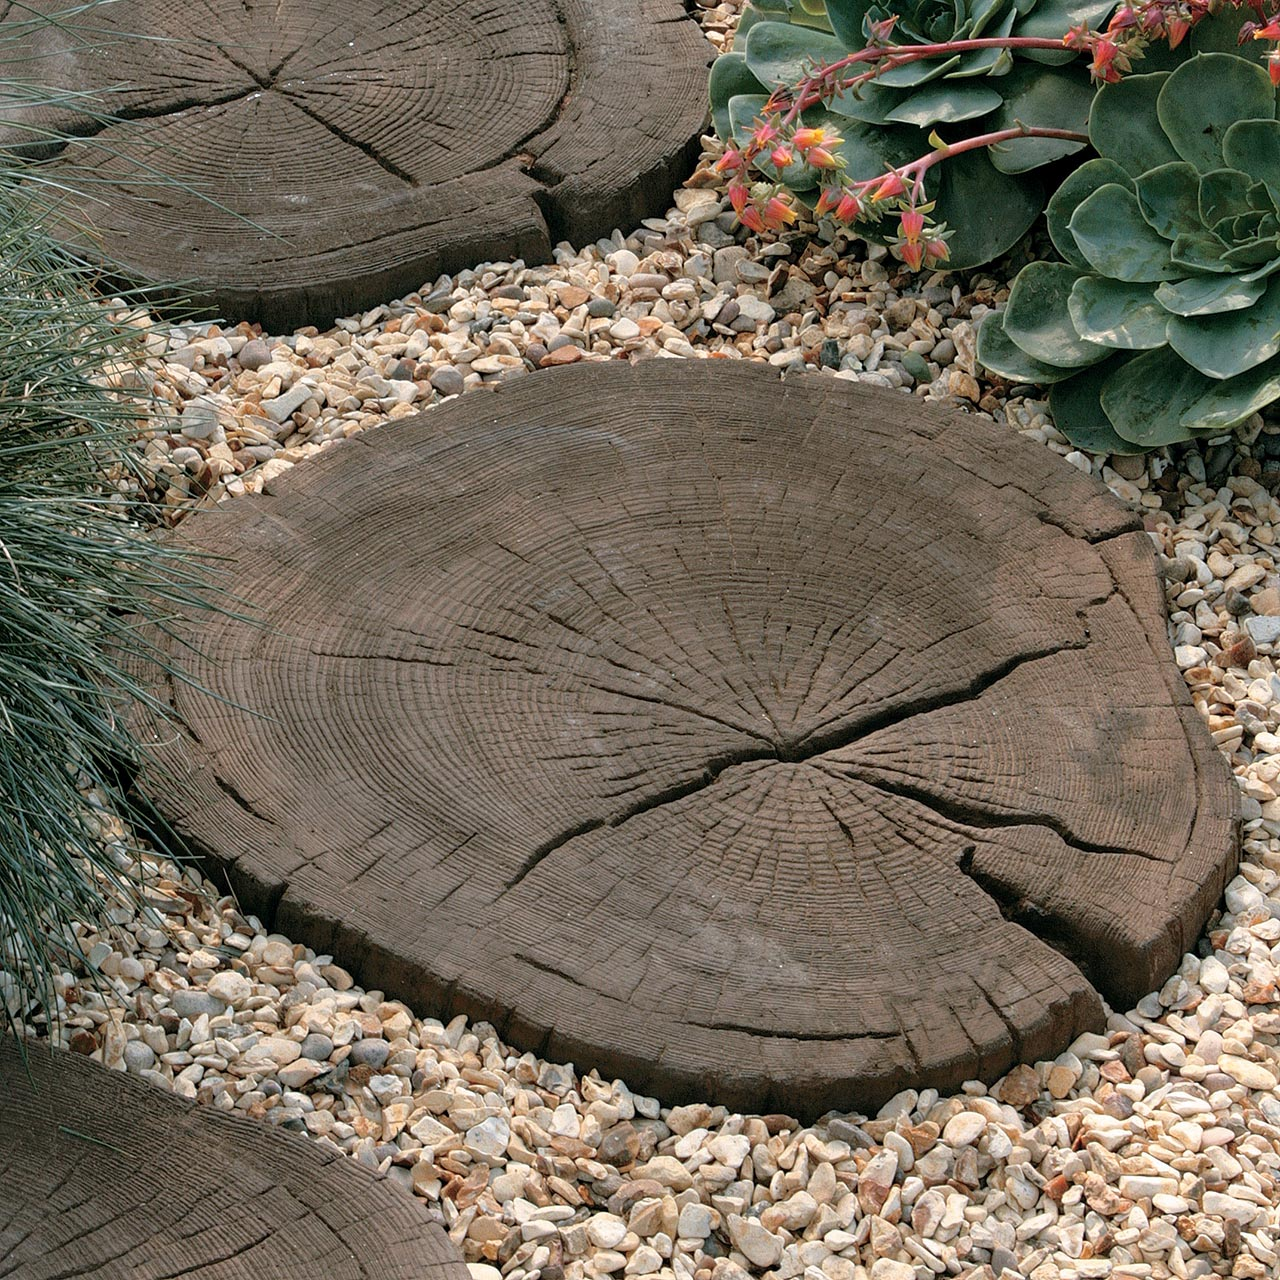 Timberstone Stepping Stone Coppice Brown image 1